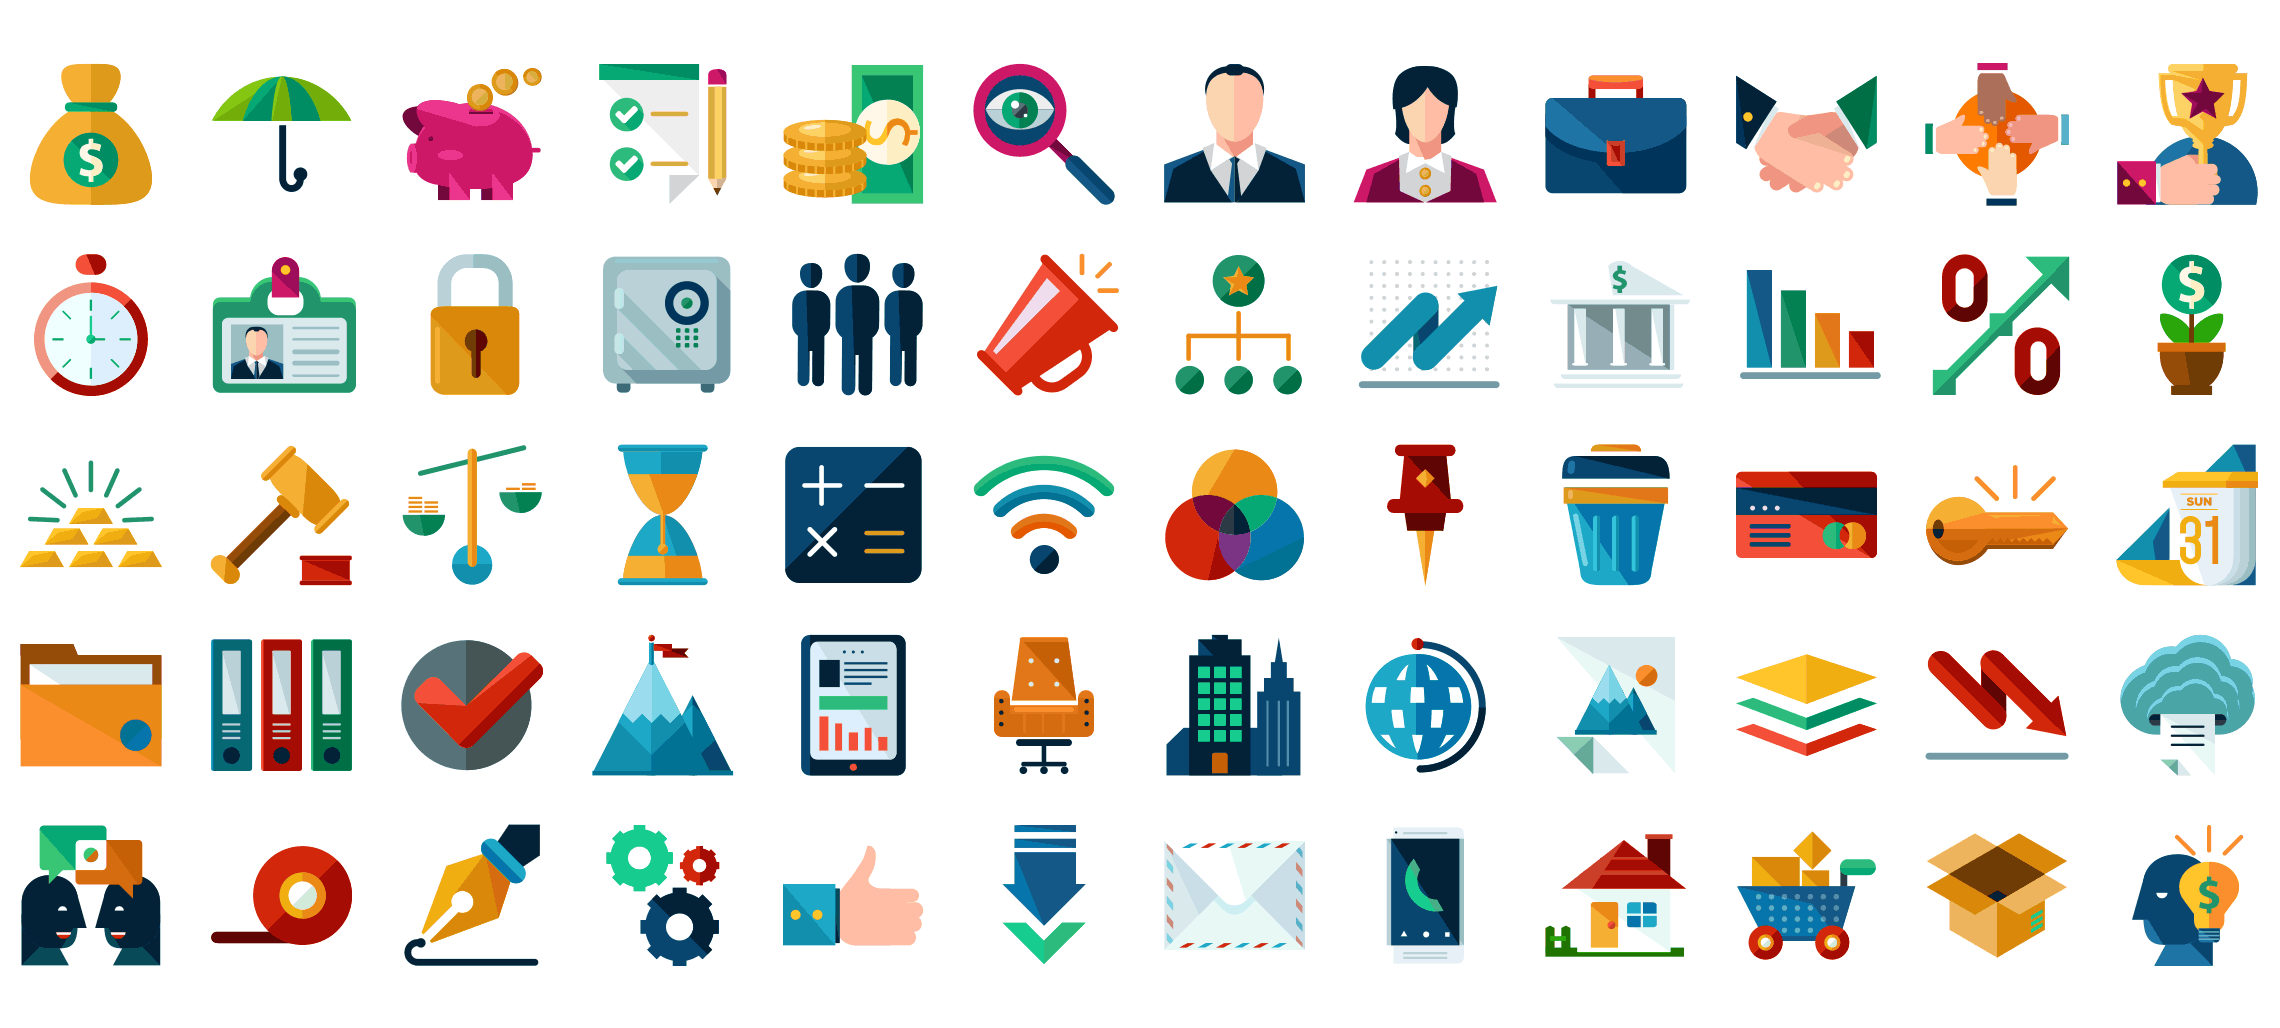 Business-flat-icons